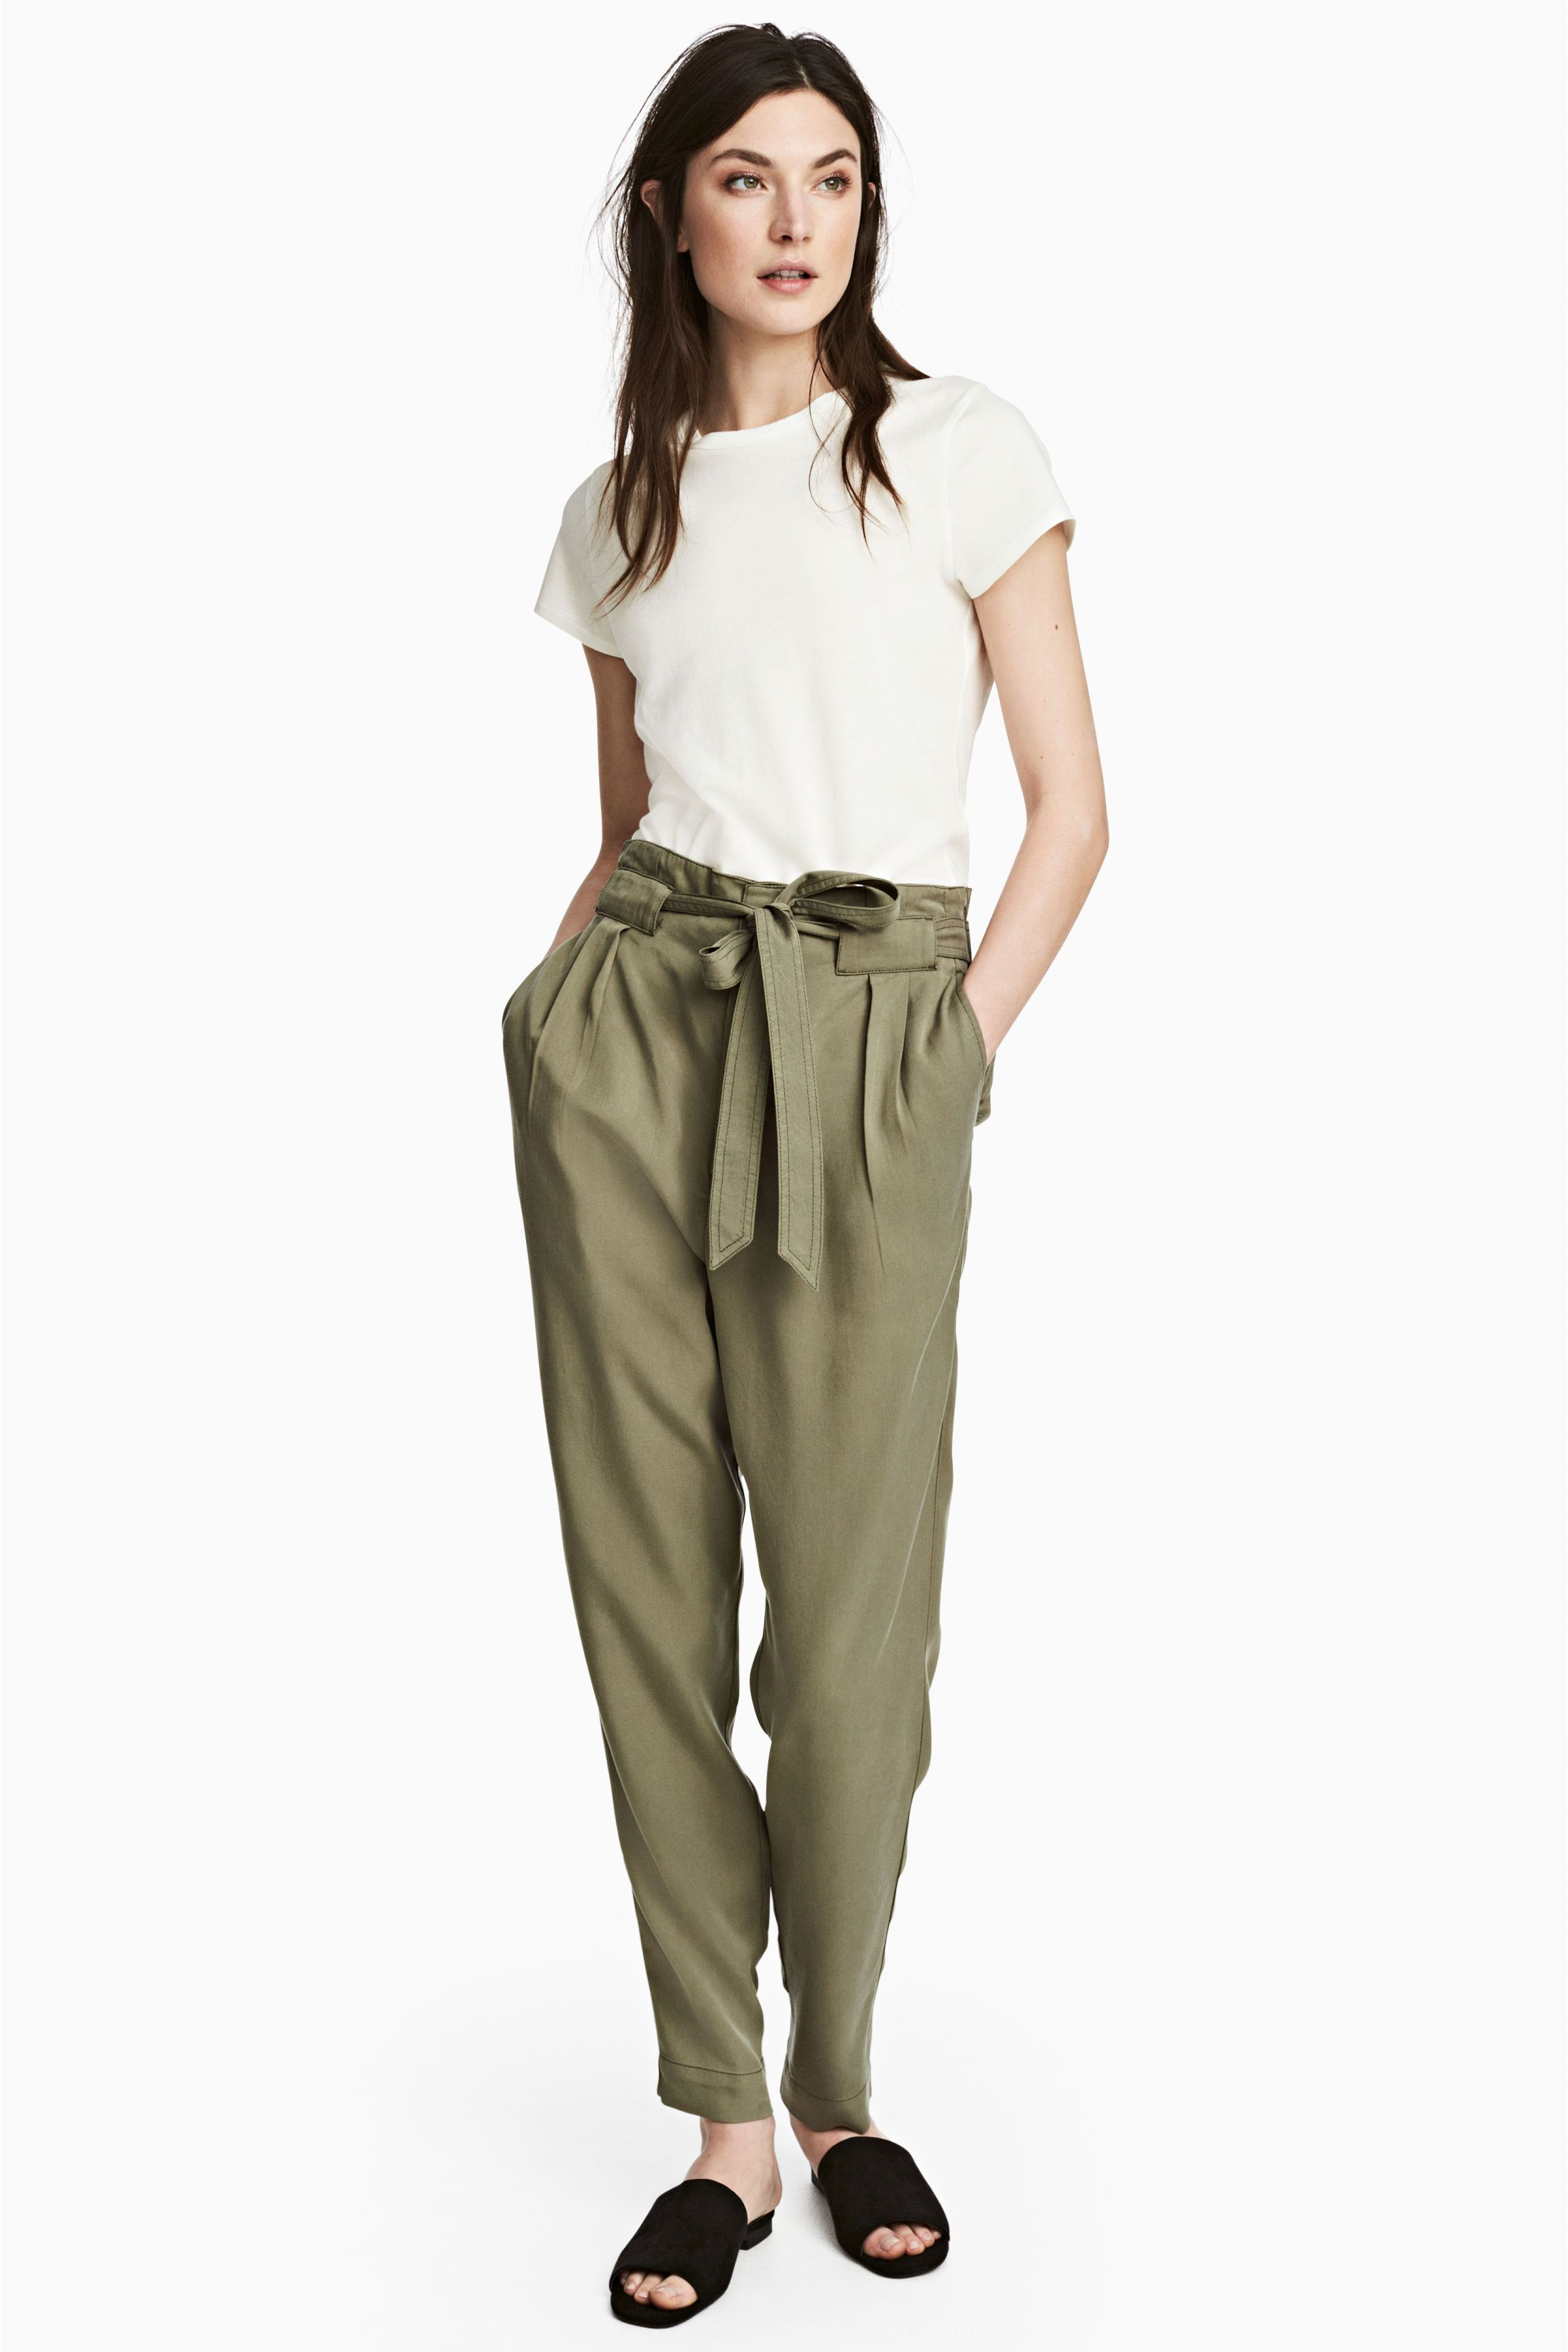 672a788a51c Olive paper bag waist pants trousers